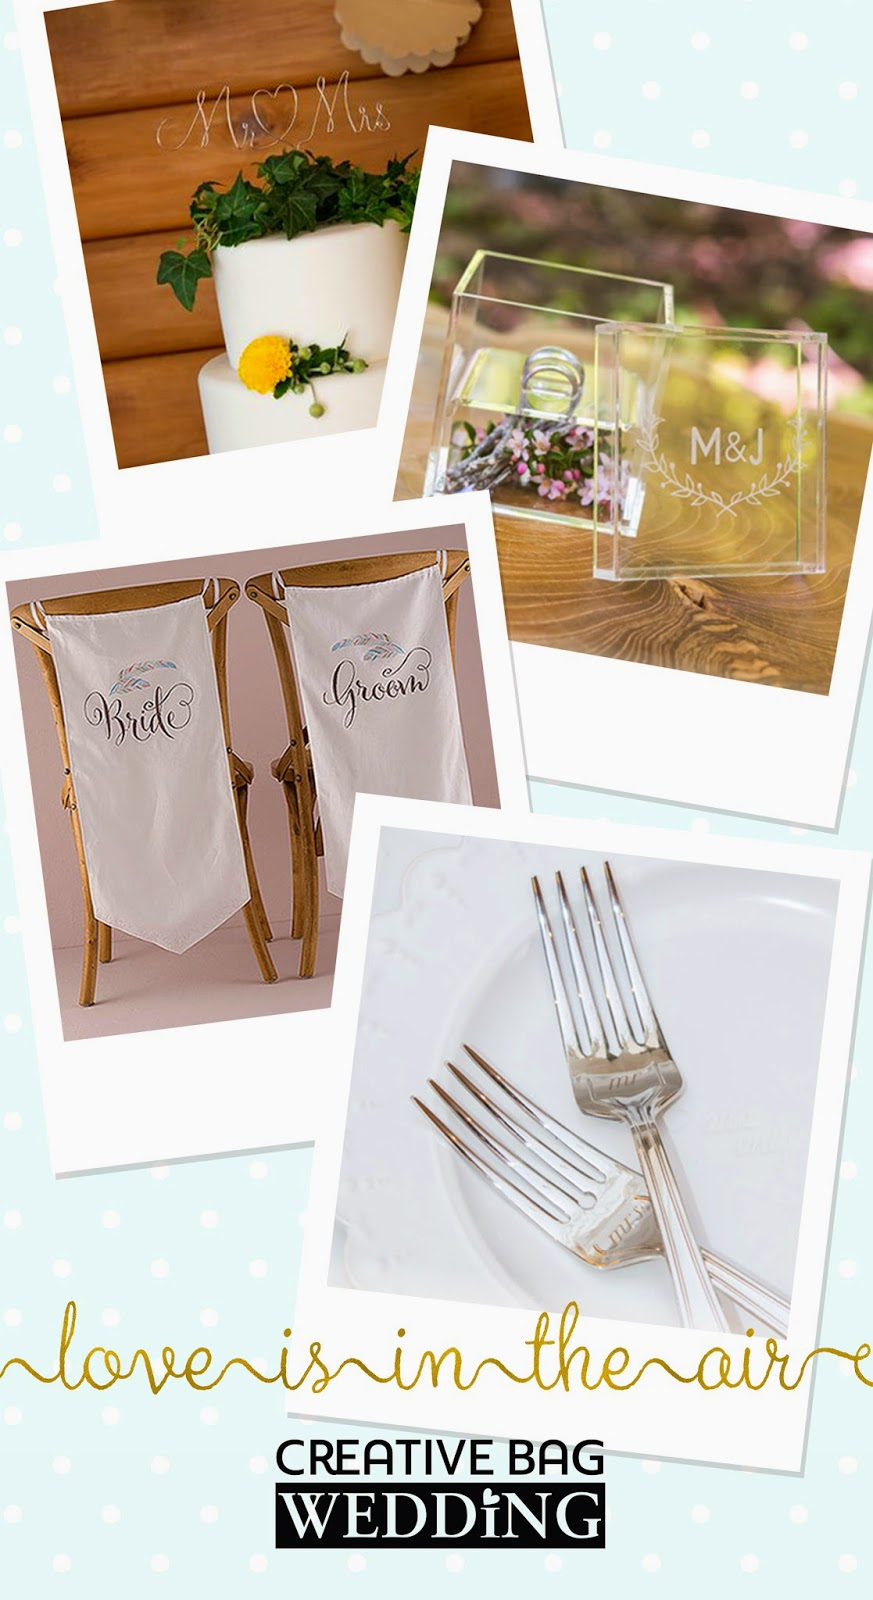 new wedding products for 2015 | creativebagwedding.com